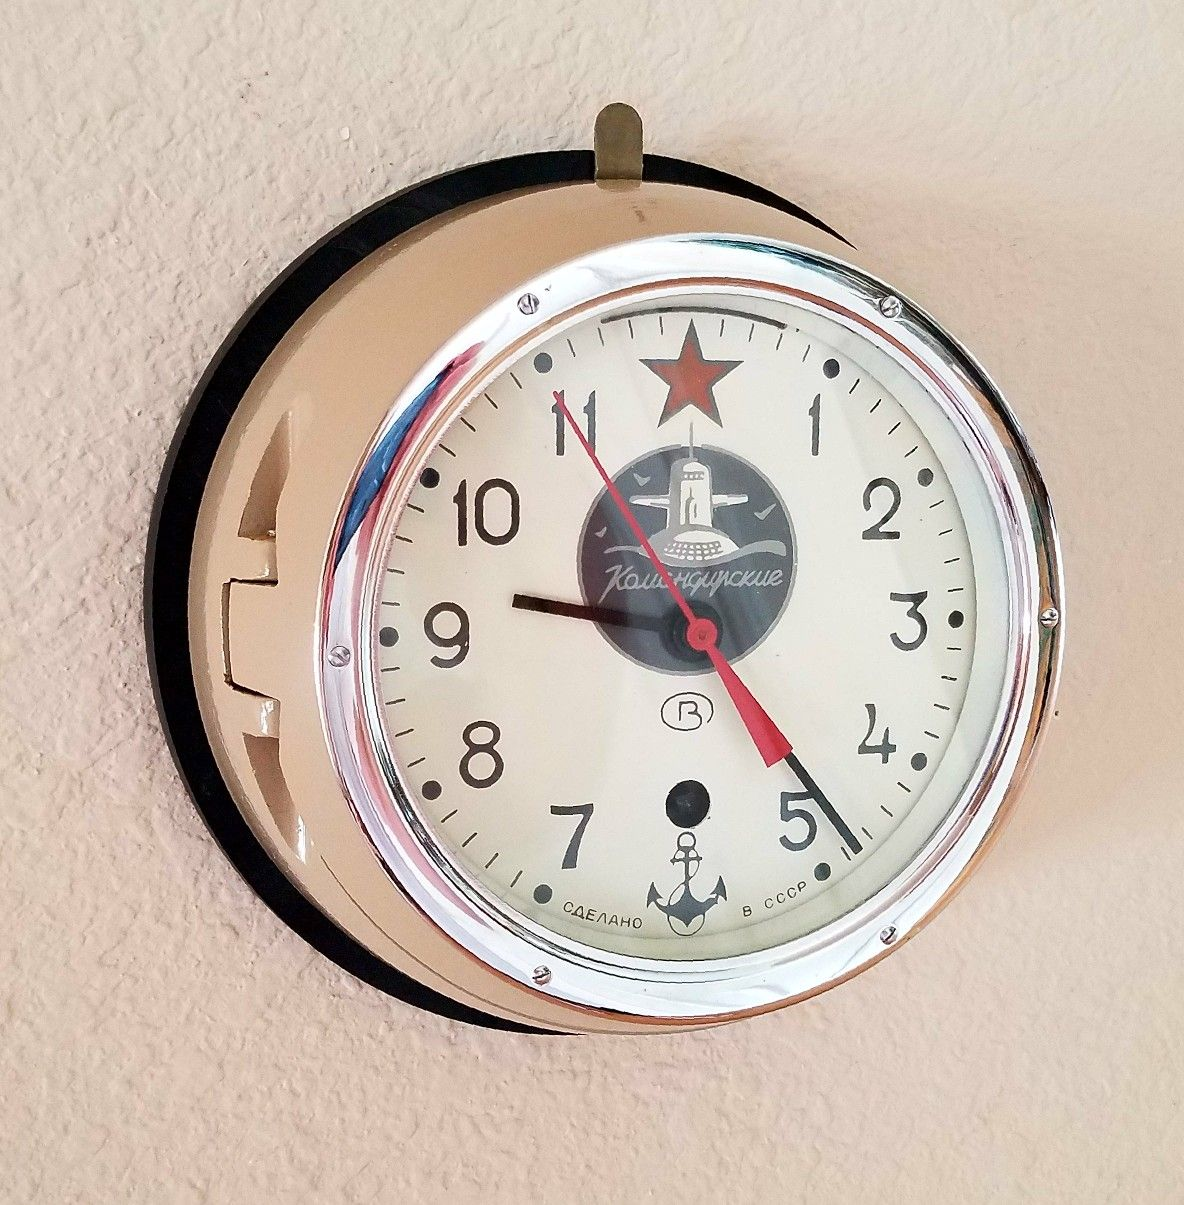 Professionally restored russian soviet military navy submarine professionally restored russian soviet military navy submarine clock with original winding key amipublicfo Images